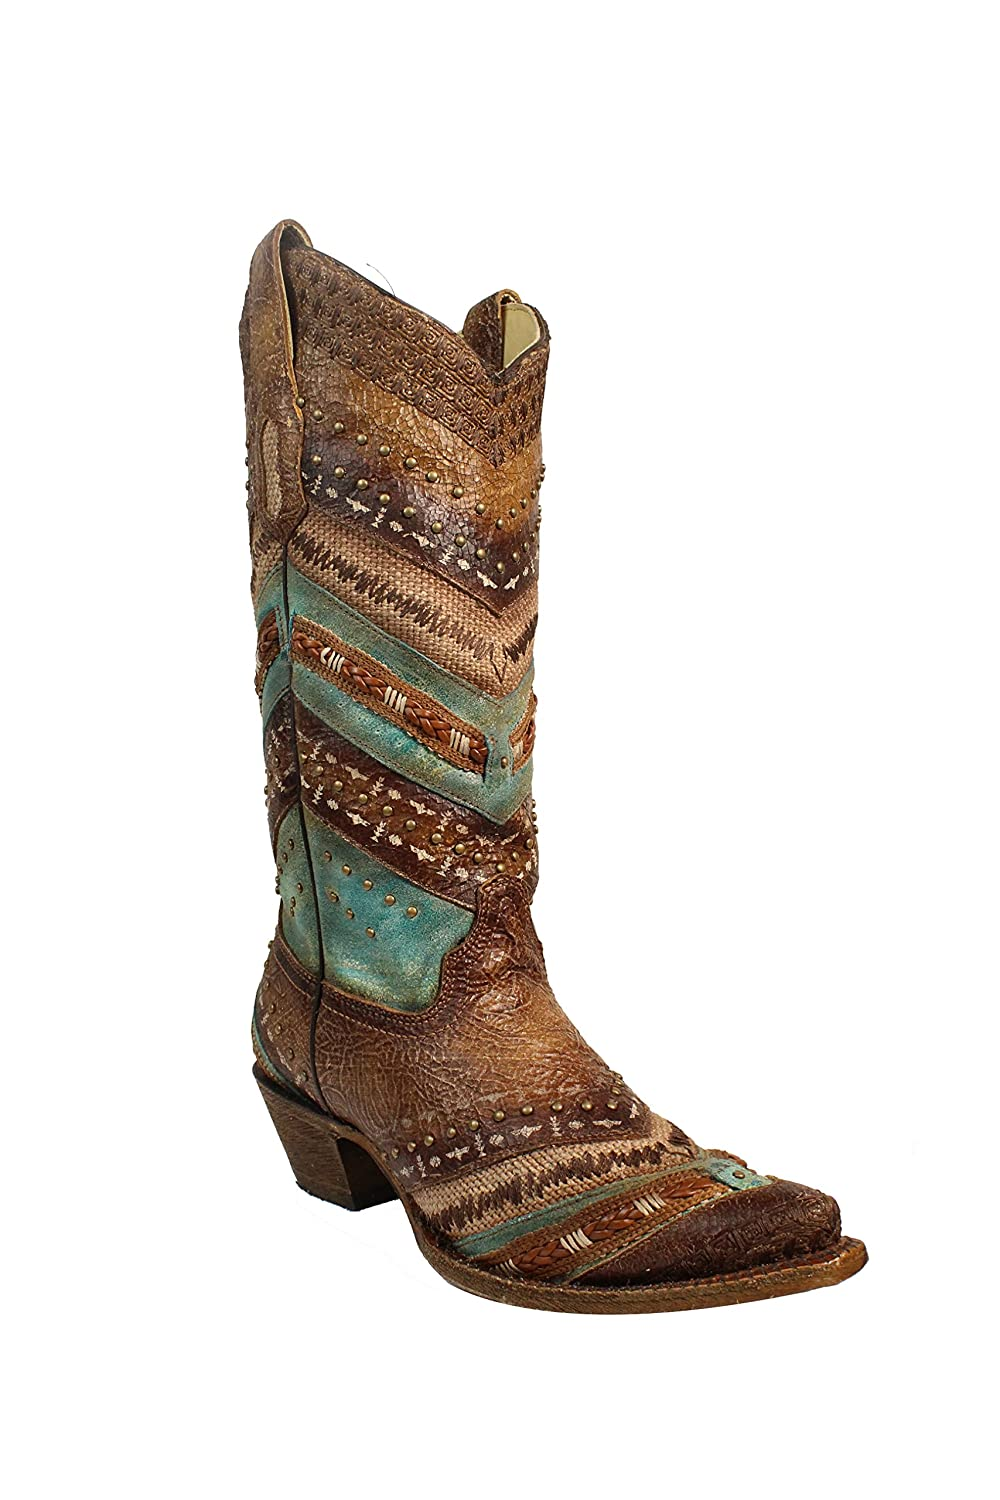 Corral Women's 13-inch Turquoise/Brown Embroidery & Studs Snip Toe Cowboy Boots B06XB1Q2XB 7.5 B(M) US|Brown